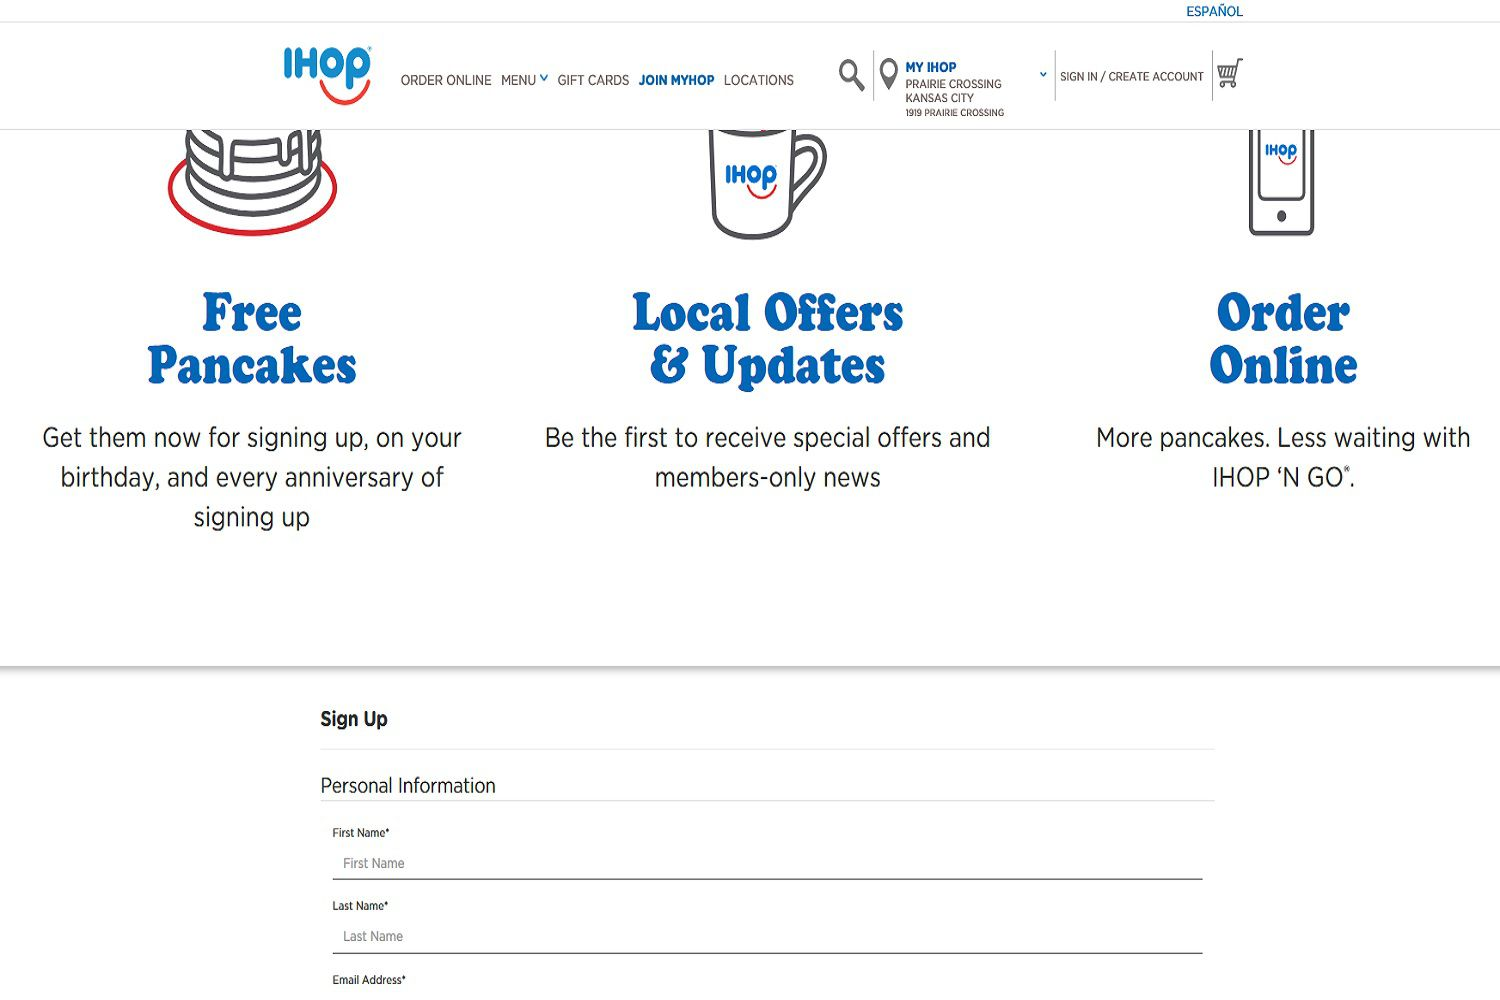 A screenshot of IHOP's MyHop sign-up webpage. Customers who sign up for MyHop can get free pancakes just for signing up.